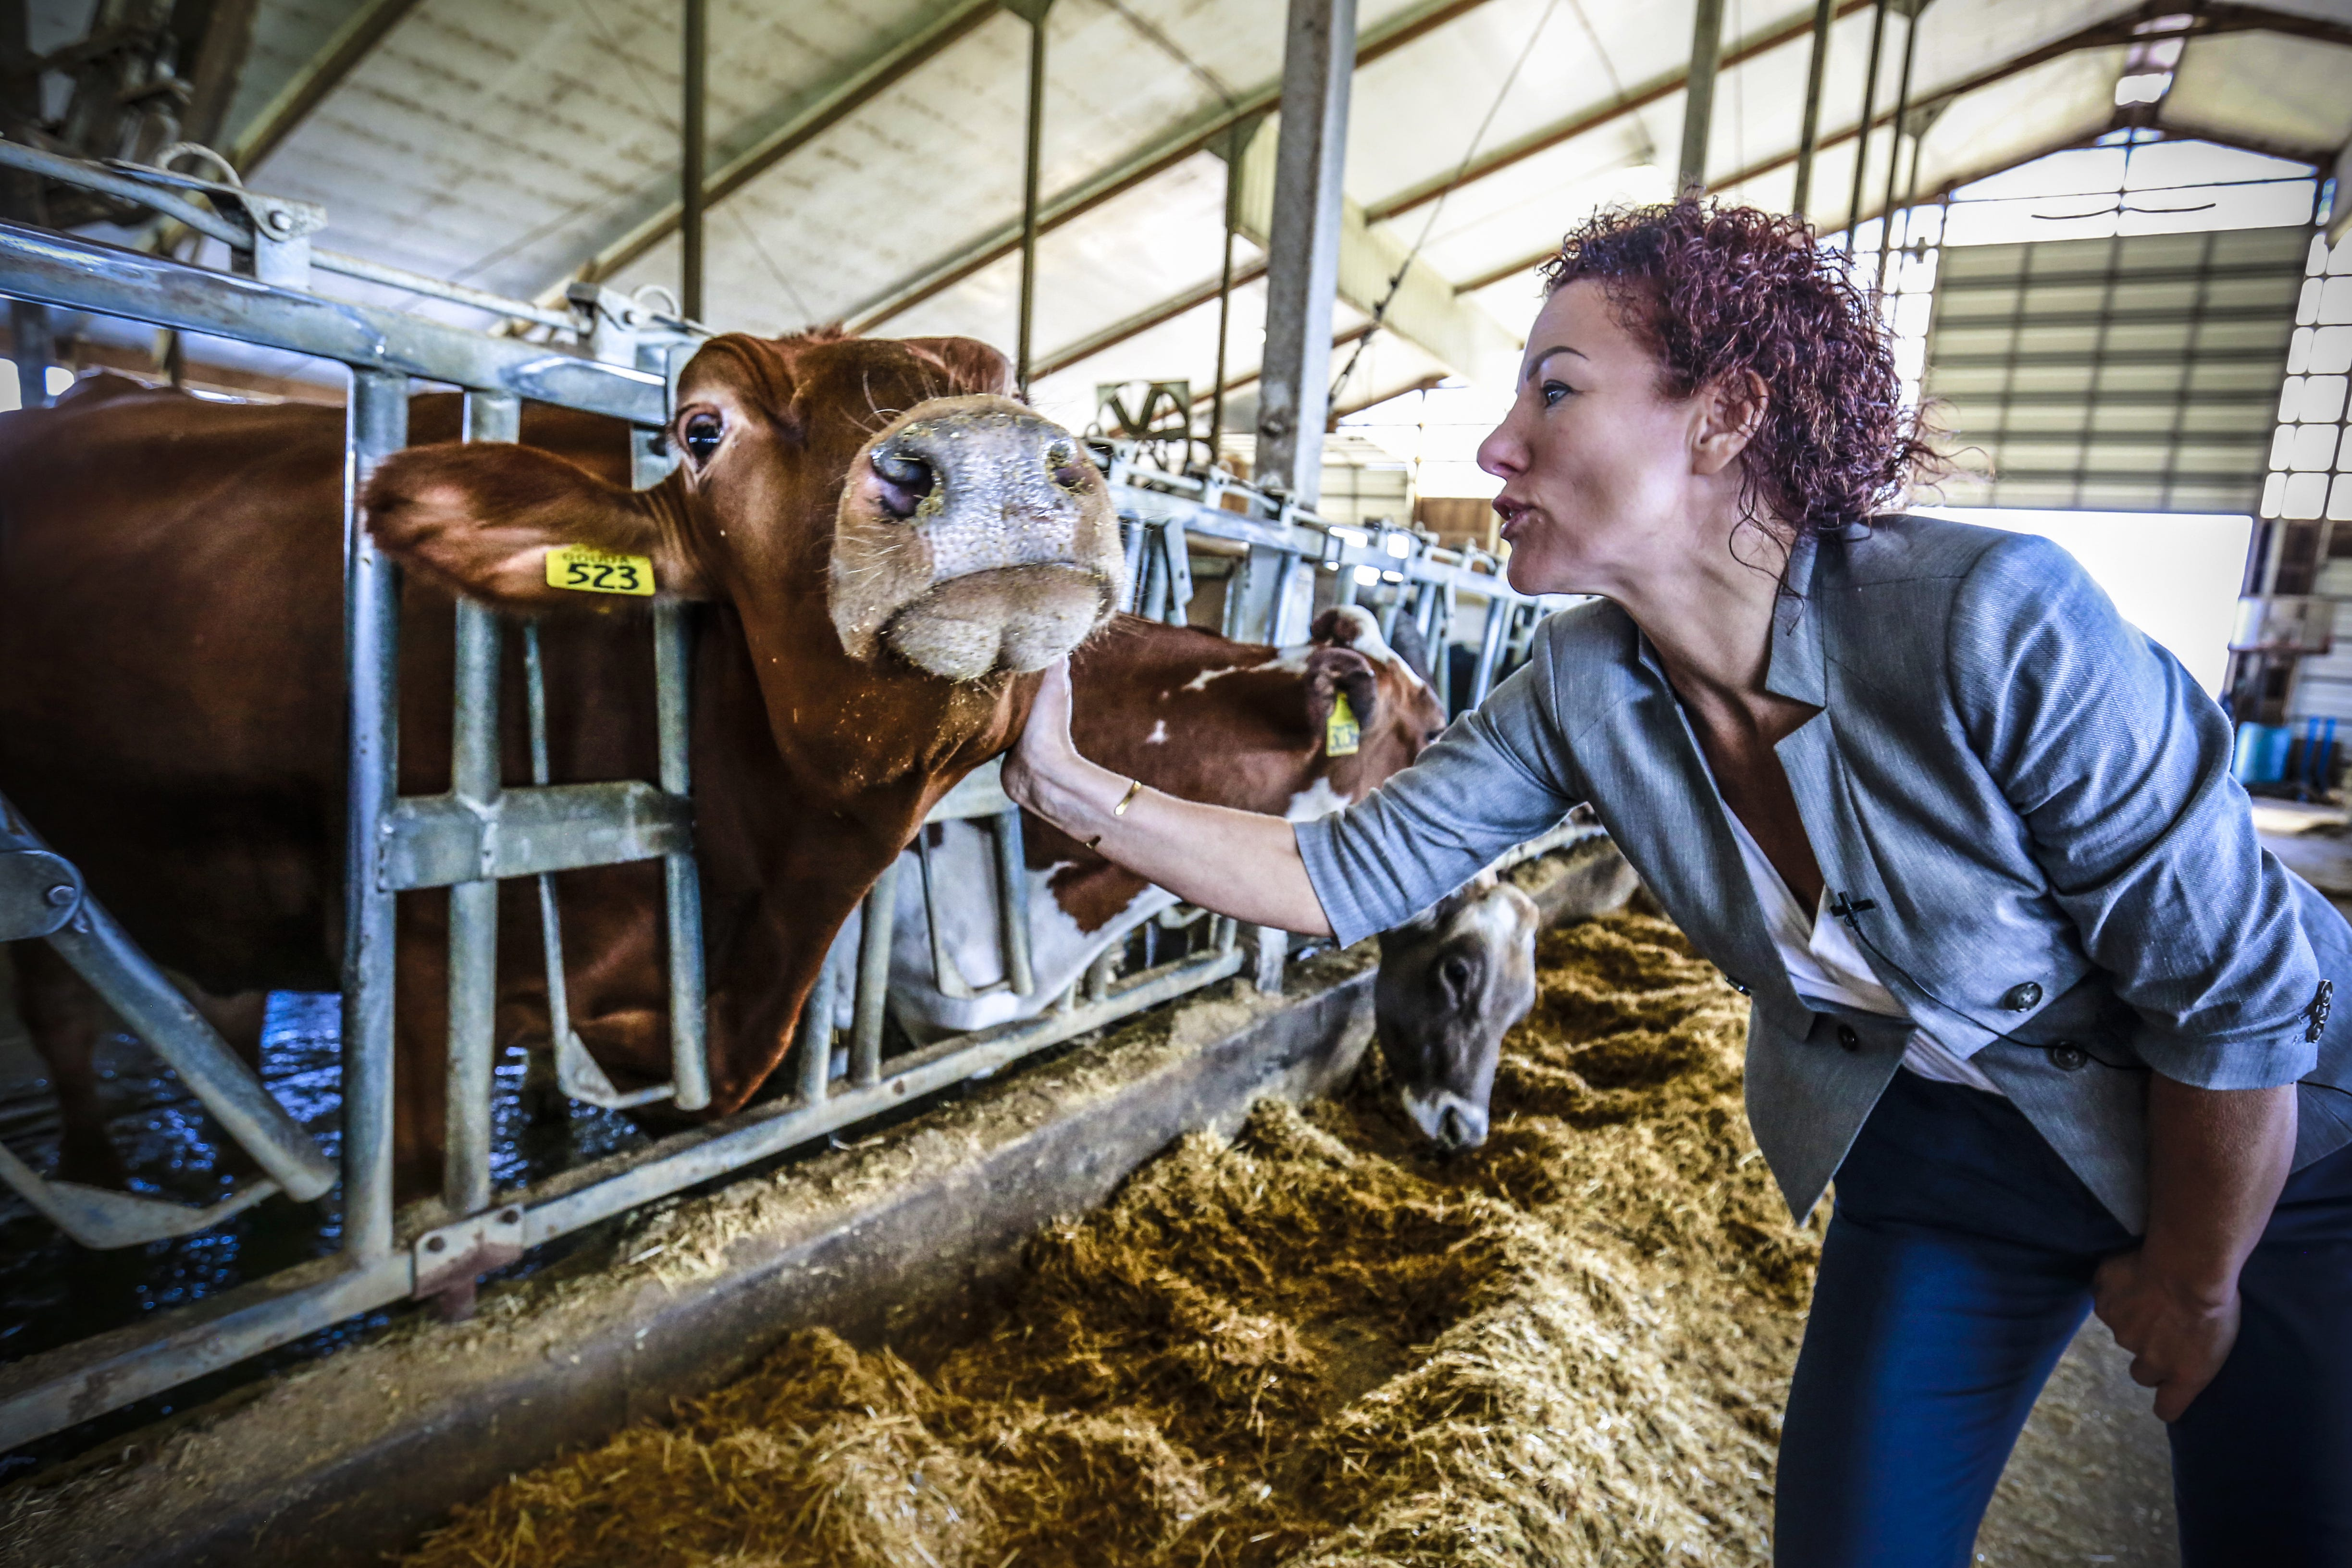 Owner Marieke Penterman interacts with one of her cows at Marieke Gouda in Thorp.